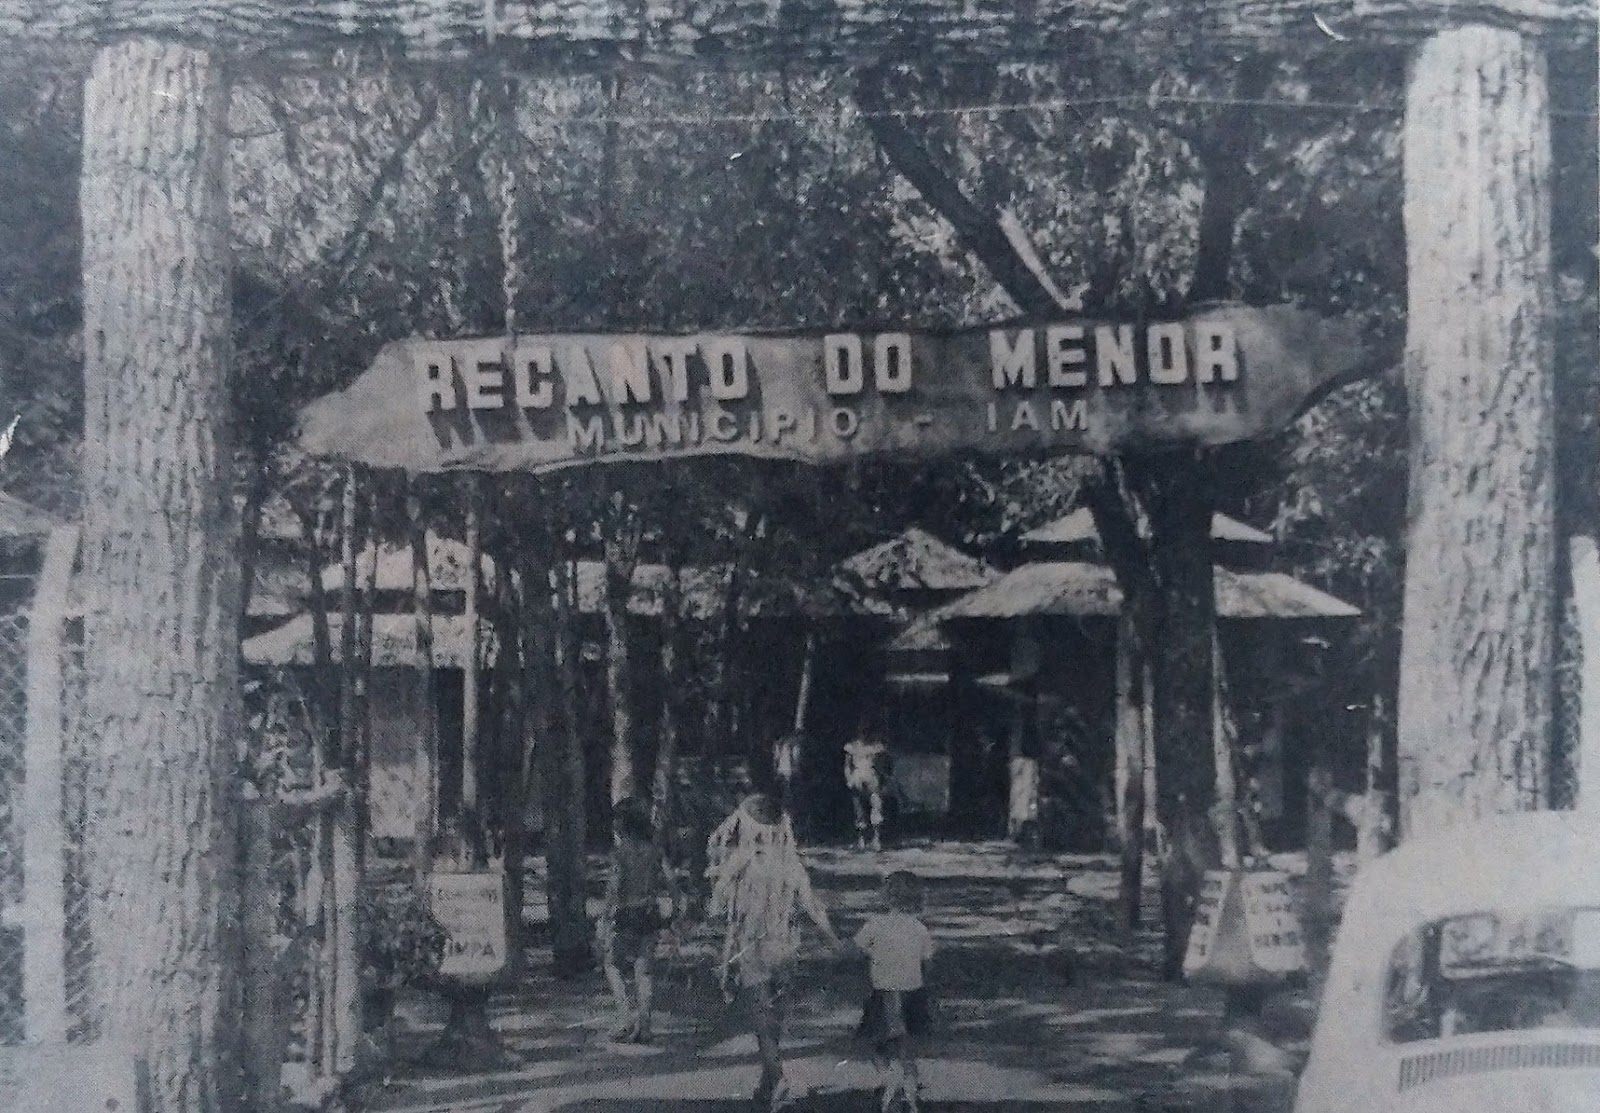 Recanto do Menor - 1978